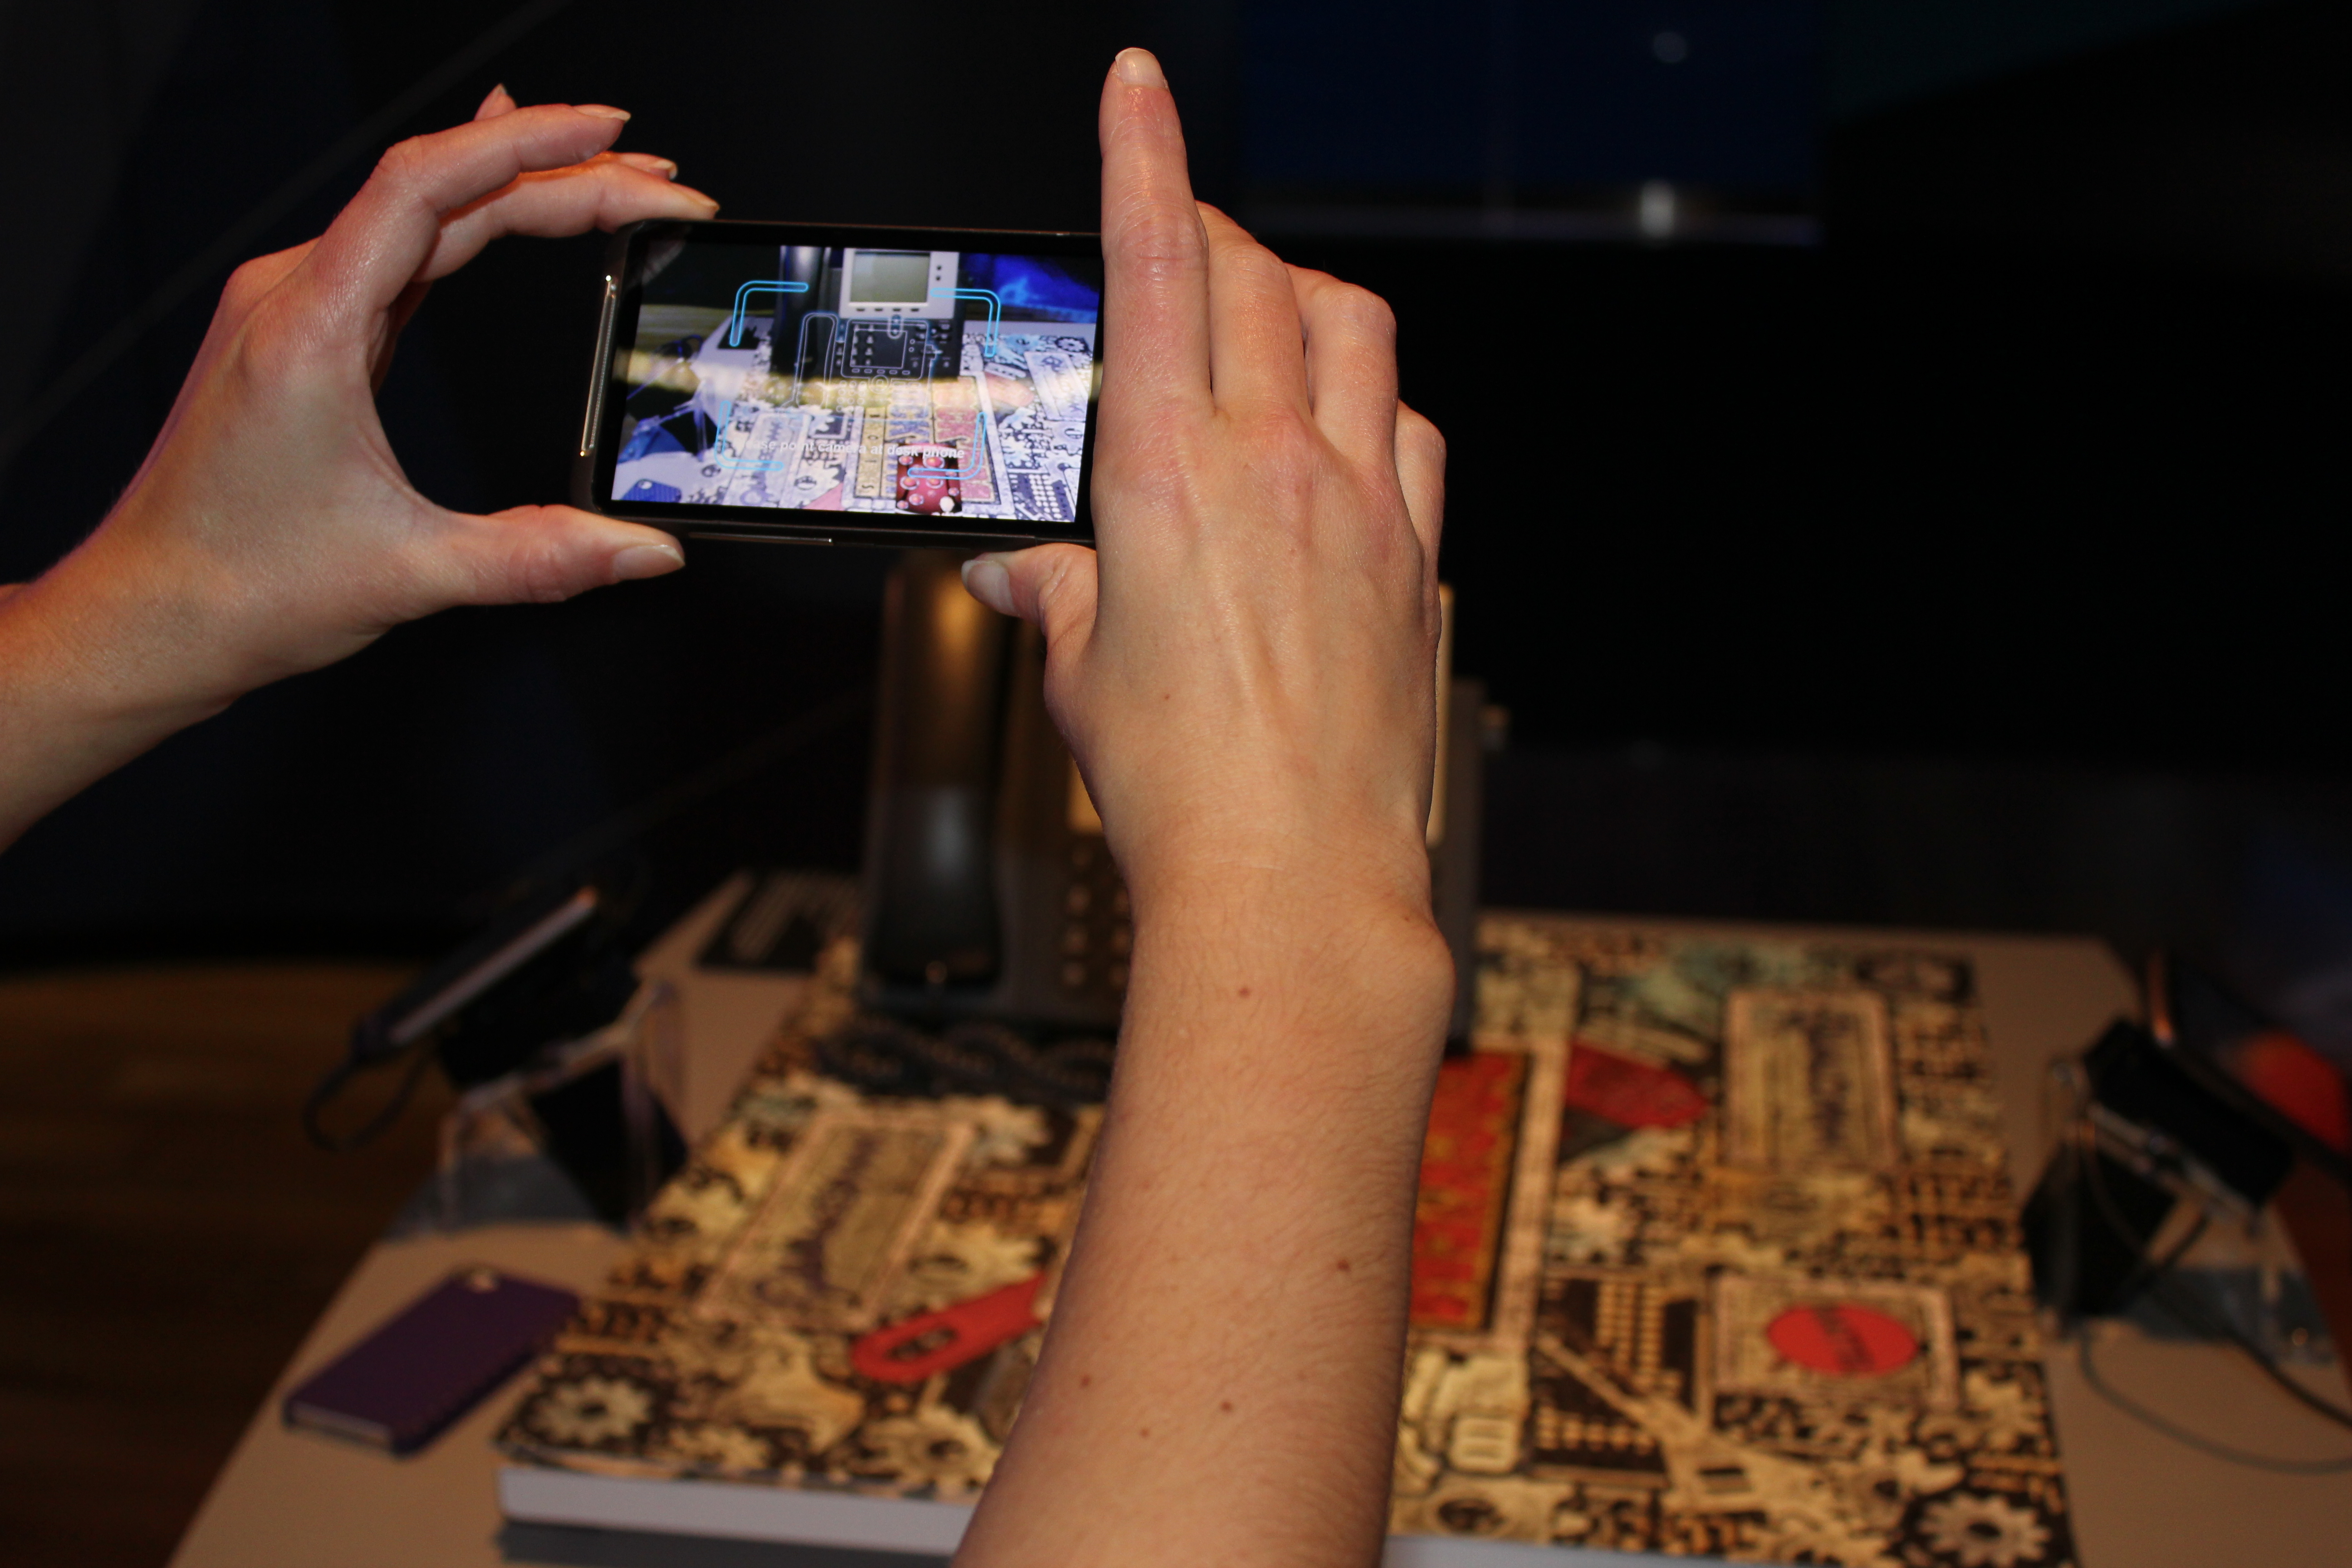 An augmented reality user guide